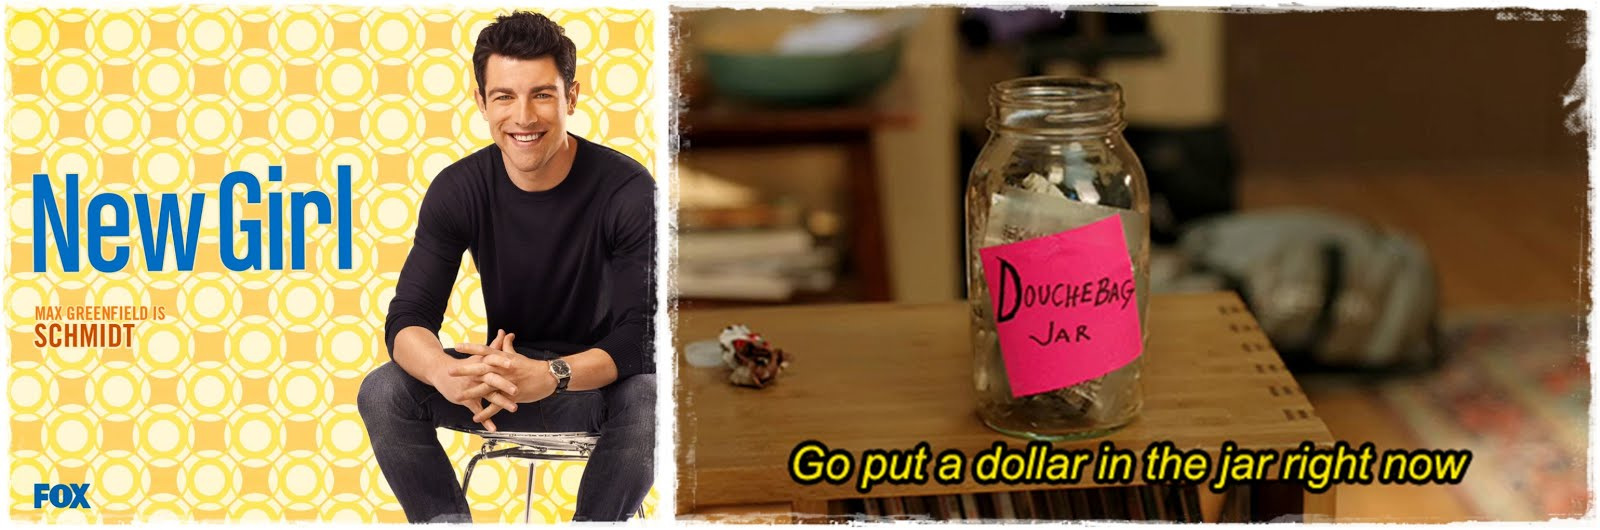 New Girl - Schmidt - Max Greenfield - Douchebag Jar